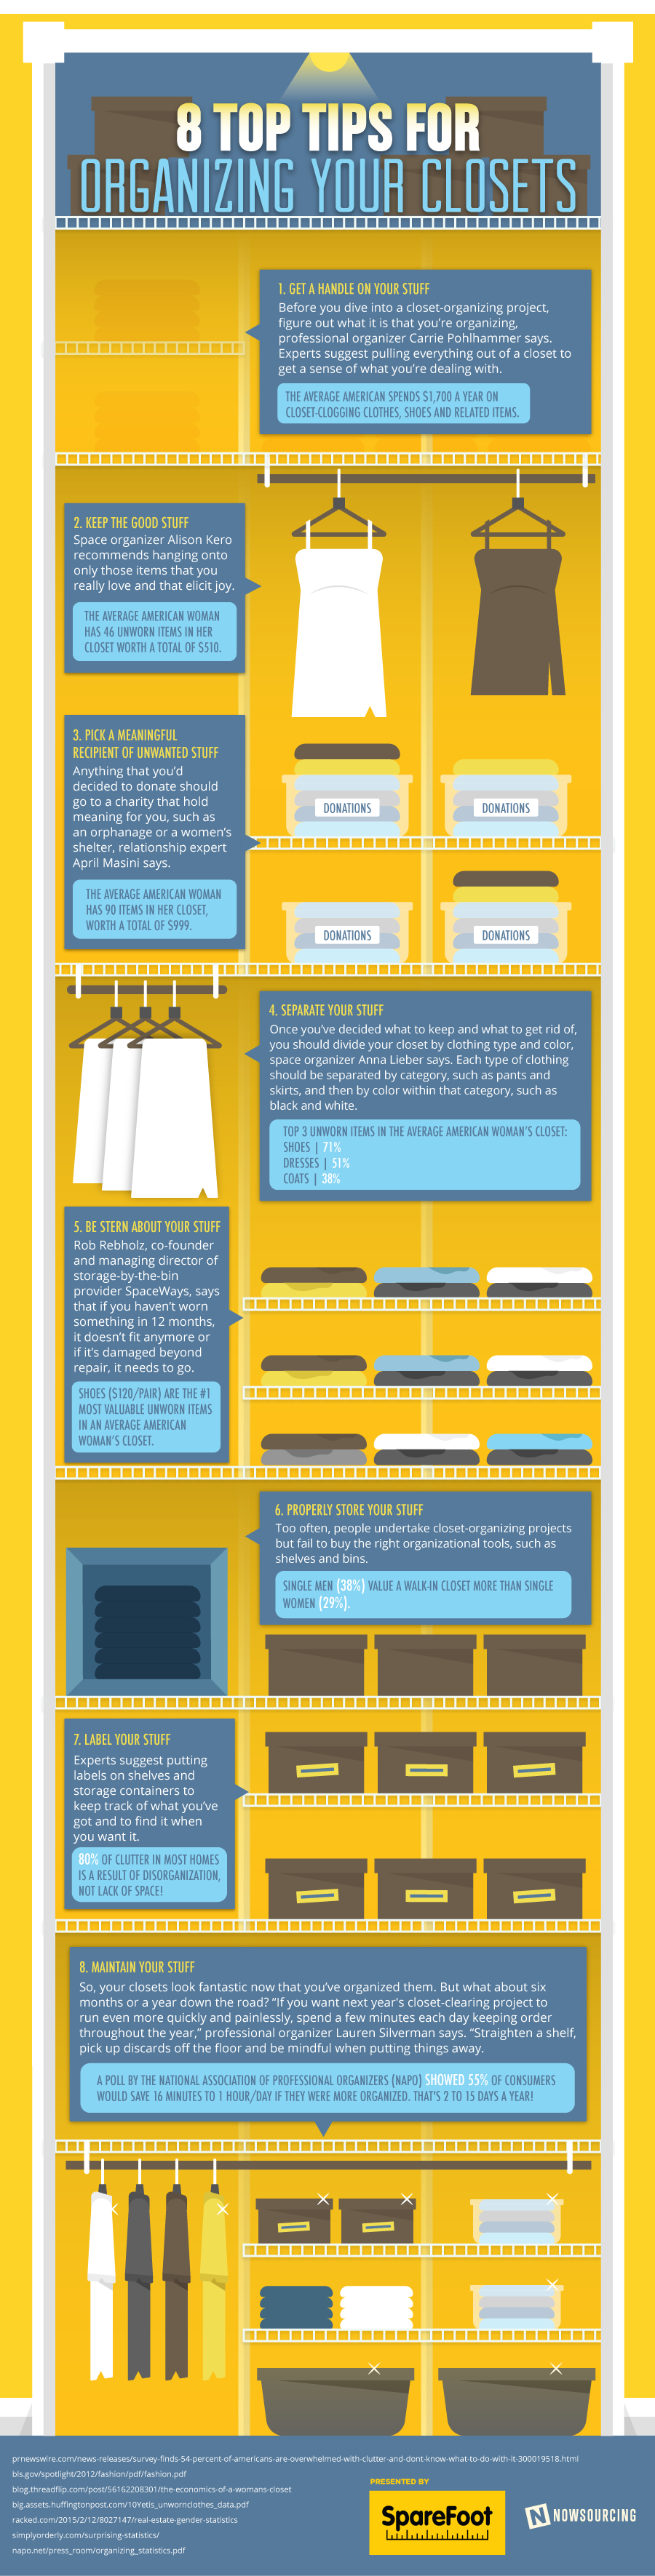 8 Top Tips For Organizing Your Closet